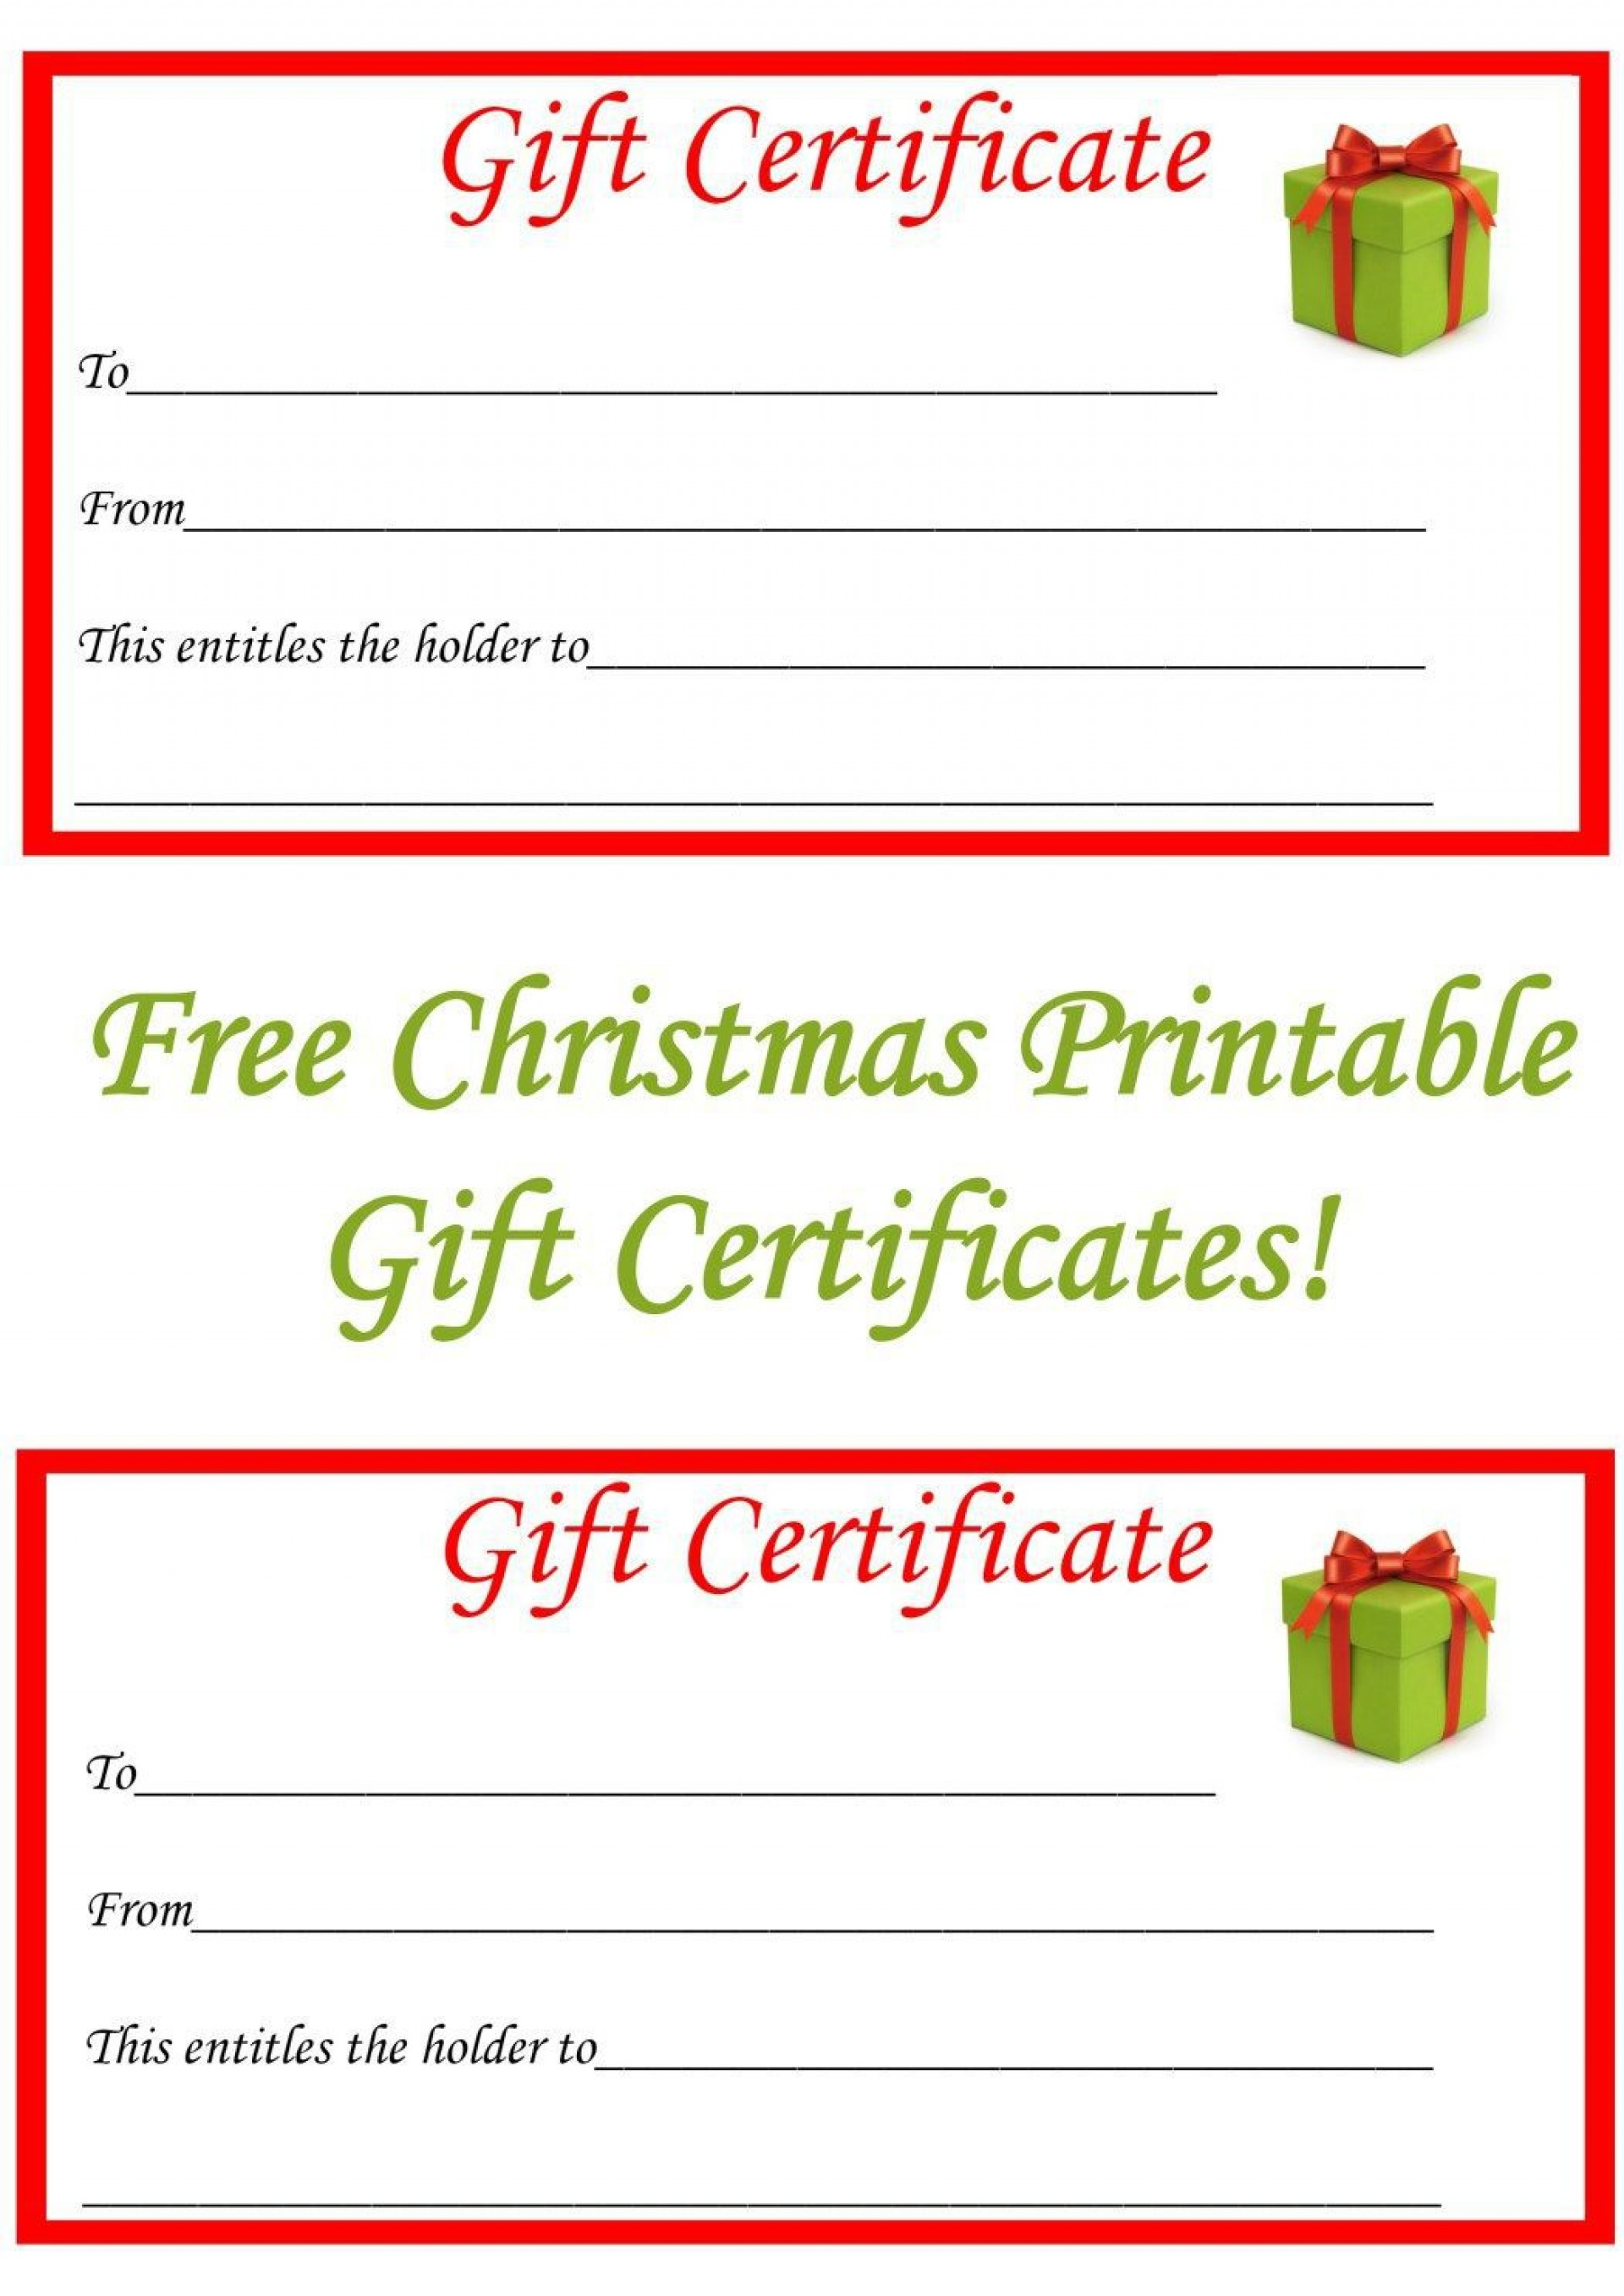 004 Dreaded Template For Christma Gift Certificate Free High Resolution  Voucher Uk Editable Download Microsoft Word1920